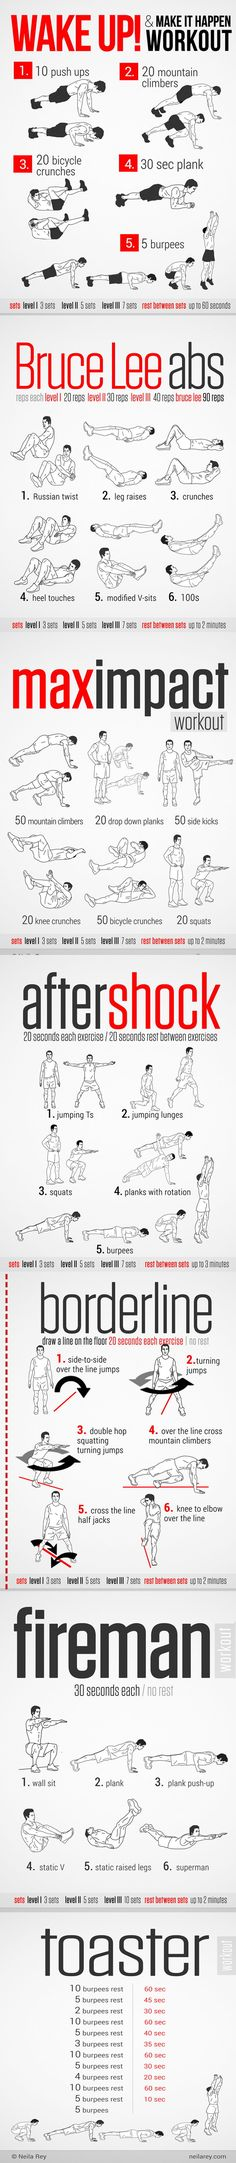 Quick No-equipment Workouts, I think you may need them. also you can download a full pdf book with all details from the link in description